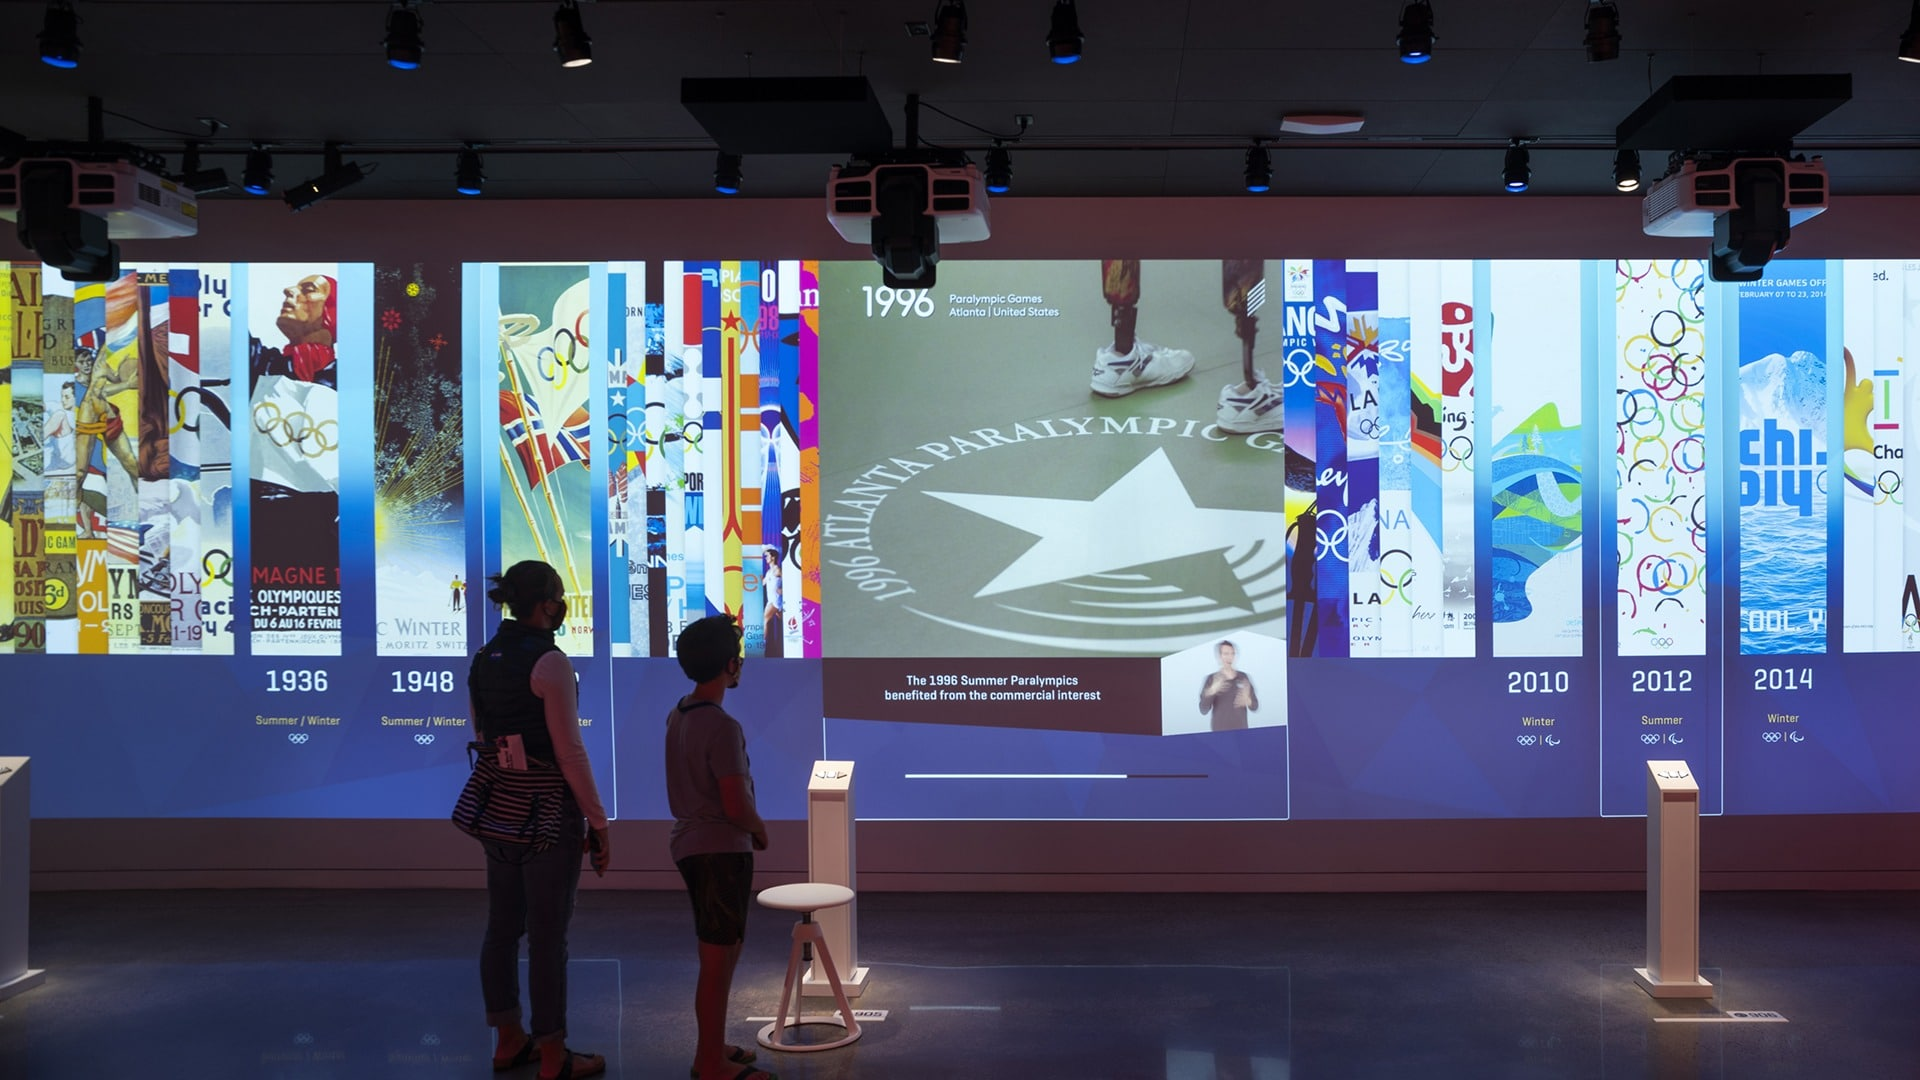 Guests view a digital exhibit of posters from Olympic and Paralympic Games